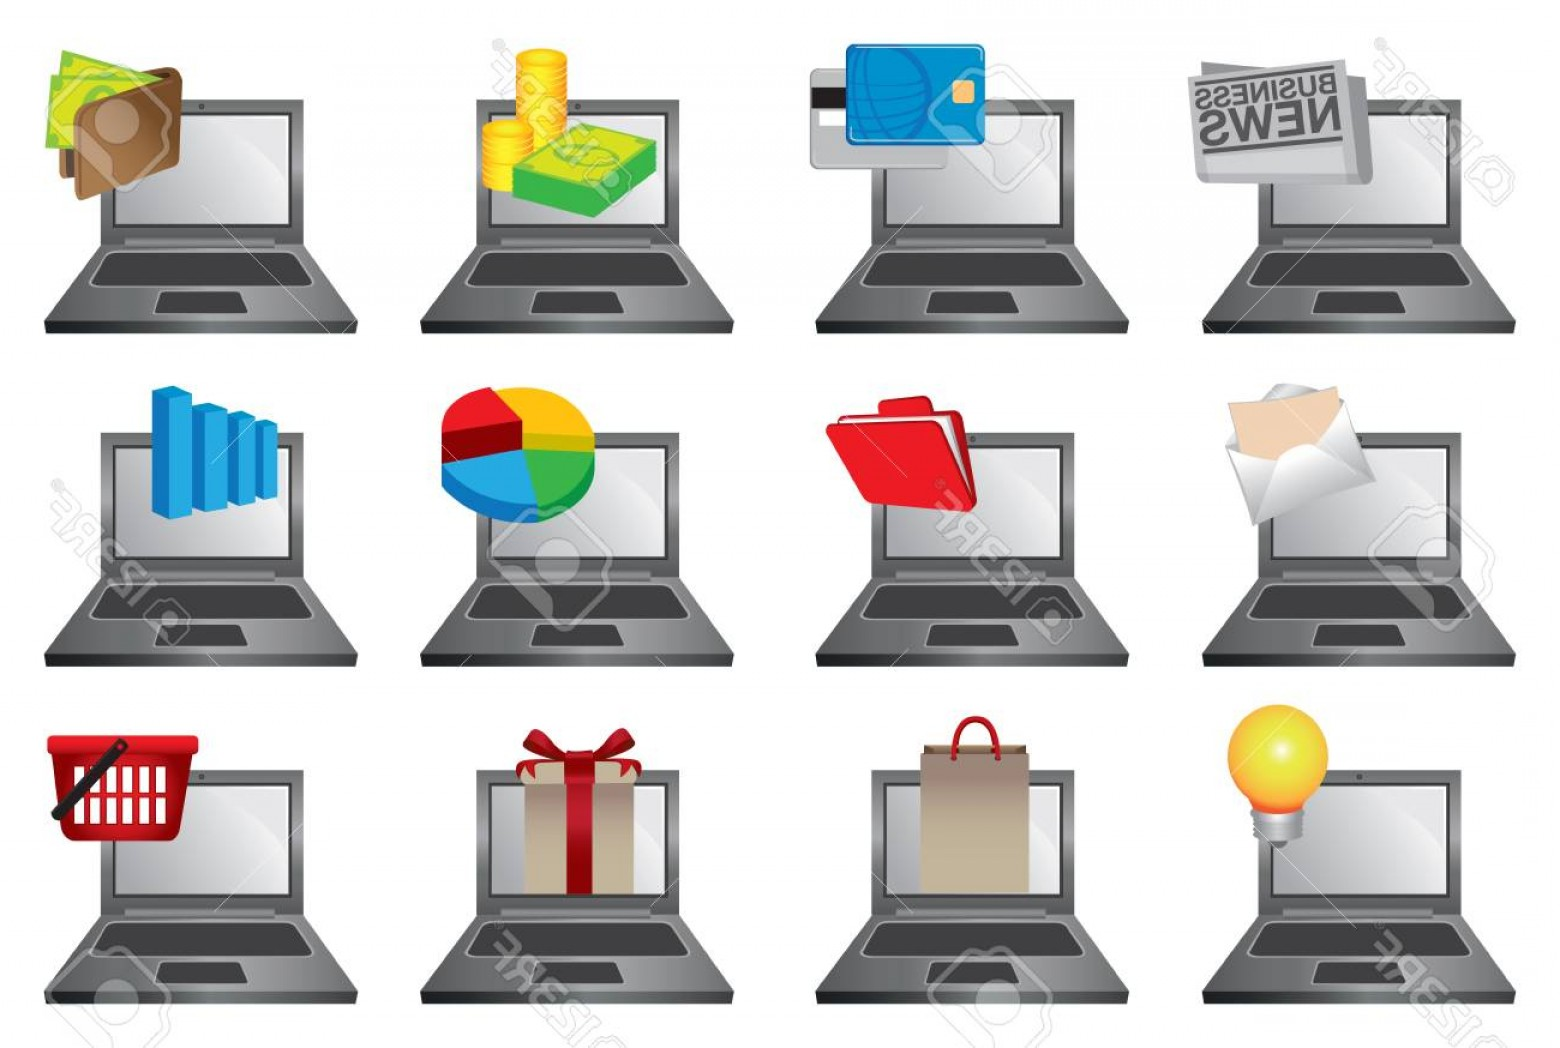 Vector Applications On Computers: Photostock Vector Vector Illustration Of Laptop Computers With Colorful Icons Of Different Softwares And Applications